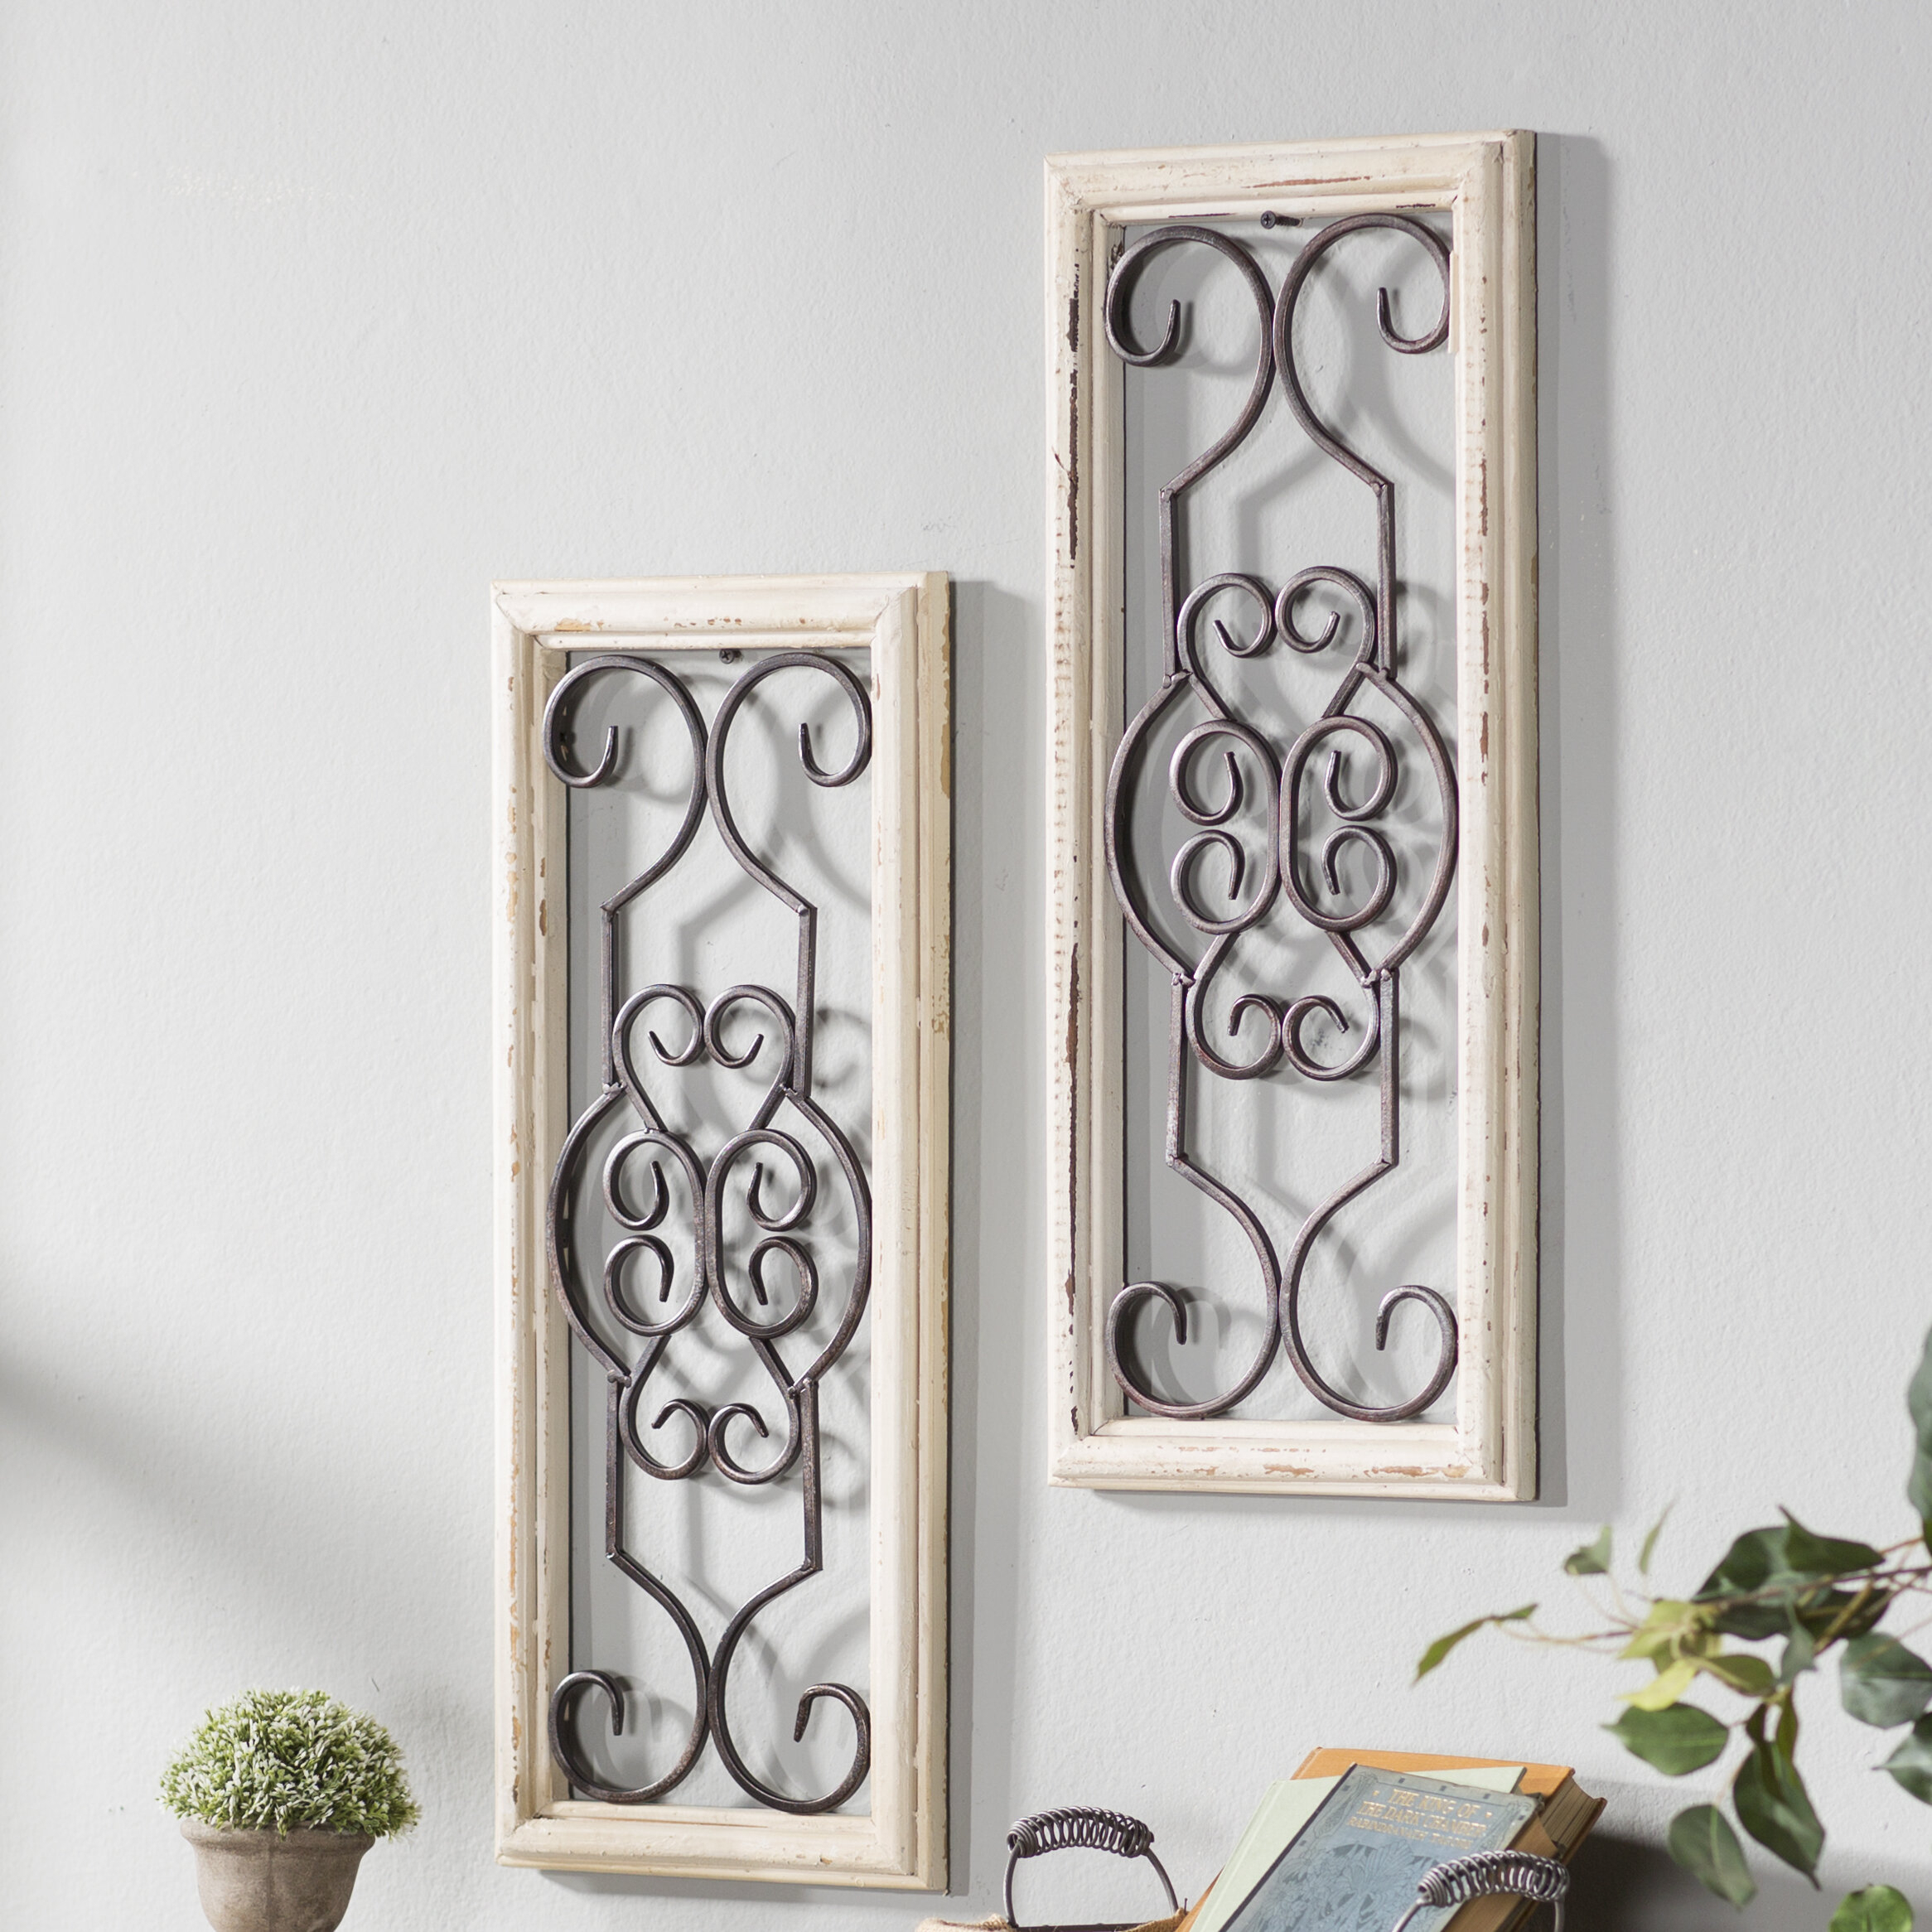 Lark Manor 1 Piece Ortie Panel Wall Décor With Regard To 1 Piece Ortie Panel Wall Decor (View 21 of 30)